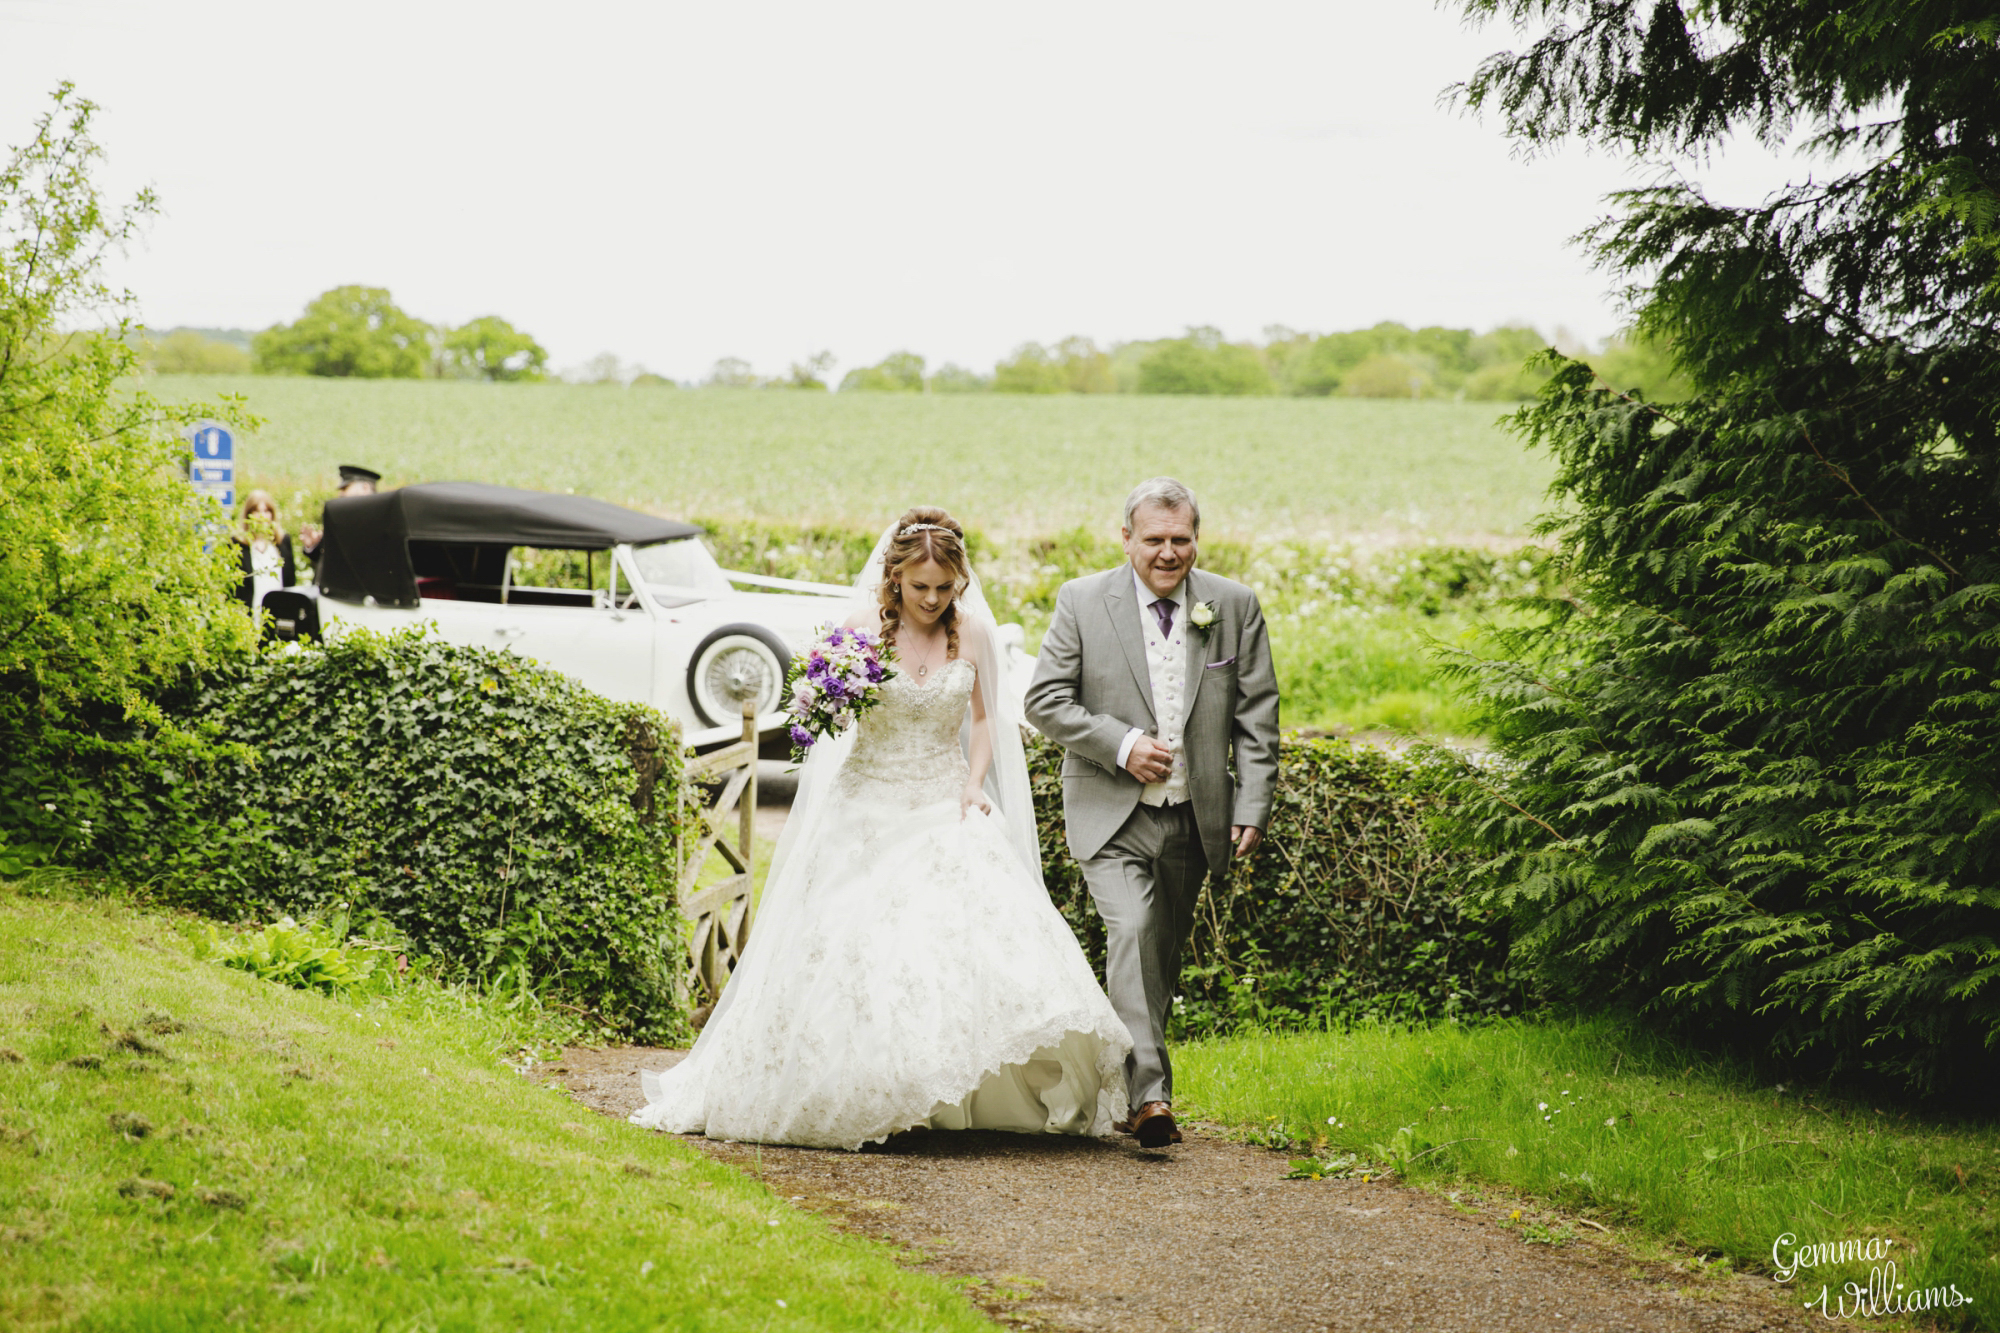 GemmaWilliamsPhotography_Weddings2018_0208.jpg